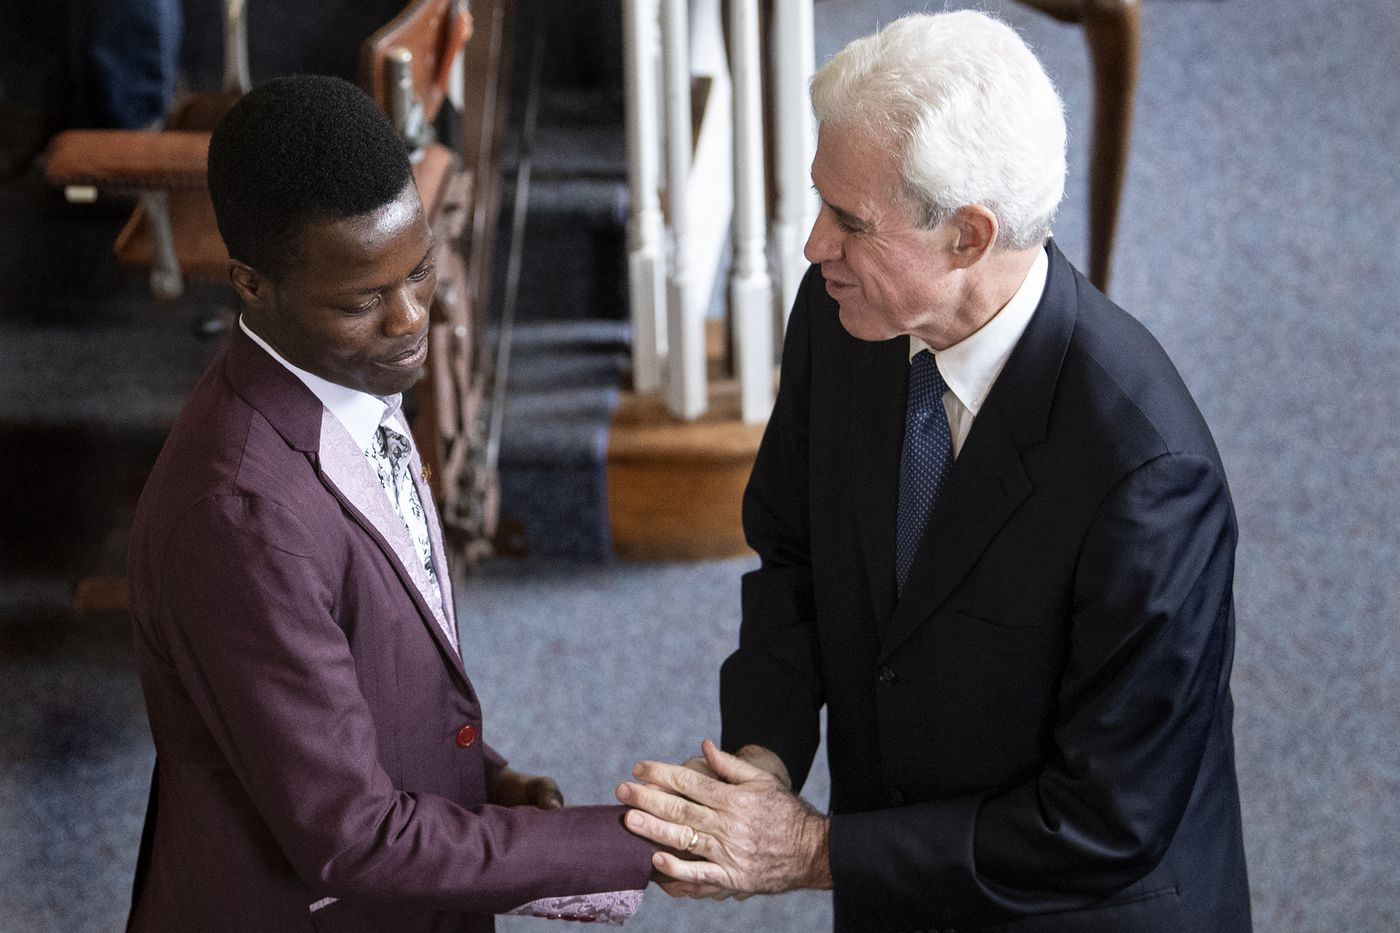 Pastor Cliff Jones, right, greets Marcel Njighe, who's originally from Cameroon, at St. Paul's Presbyterian Church in Laurel Springs. The congregation prays for Cameroon, which some observers describe as on the verge of civil war. Jones said the people in his flock also want to learn more about the situation, and to do more to help.